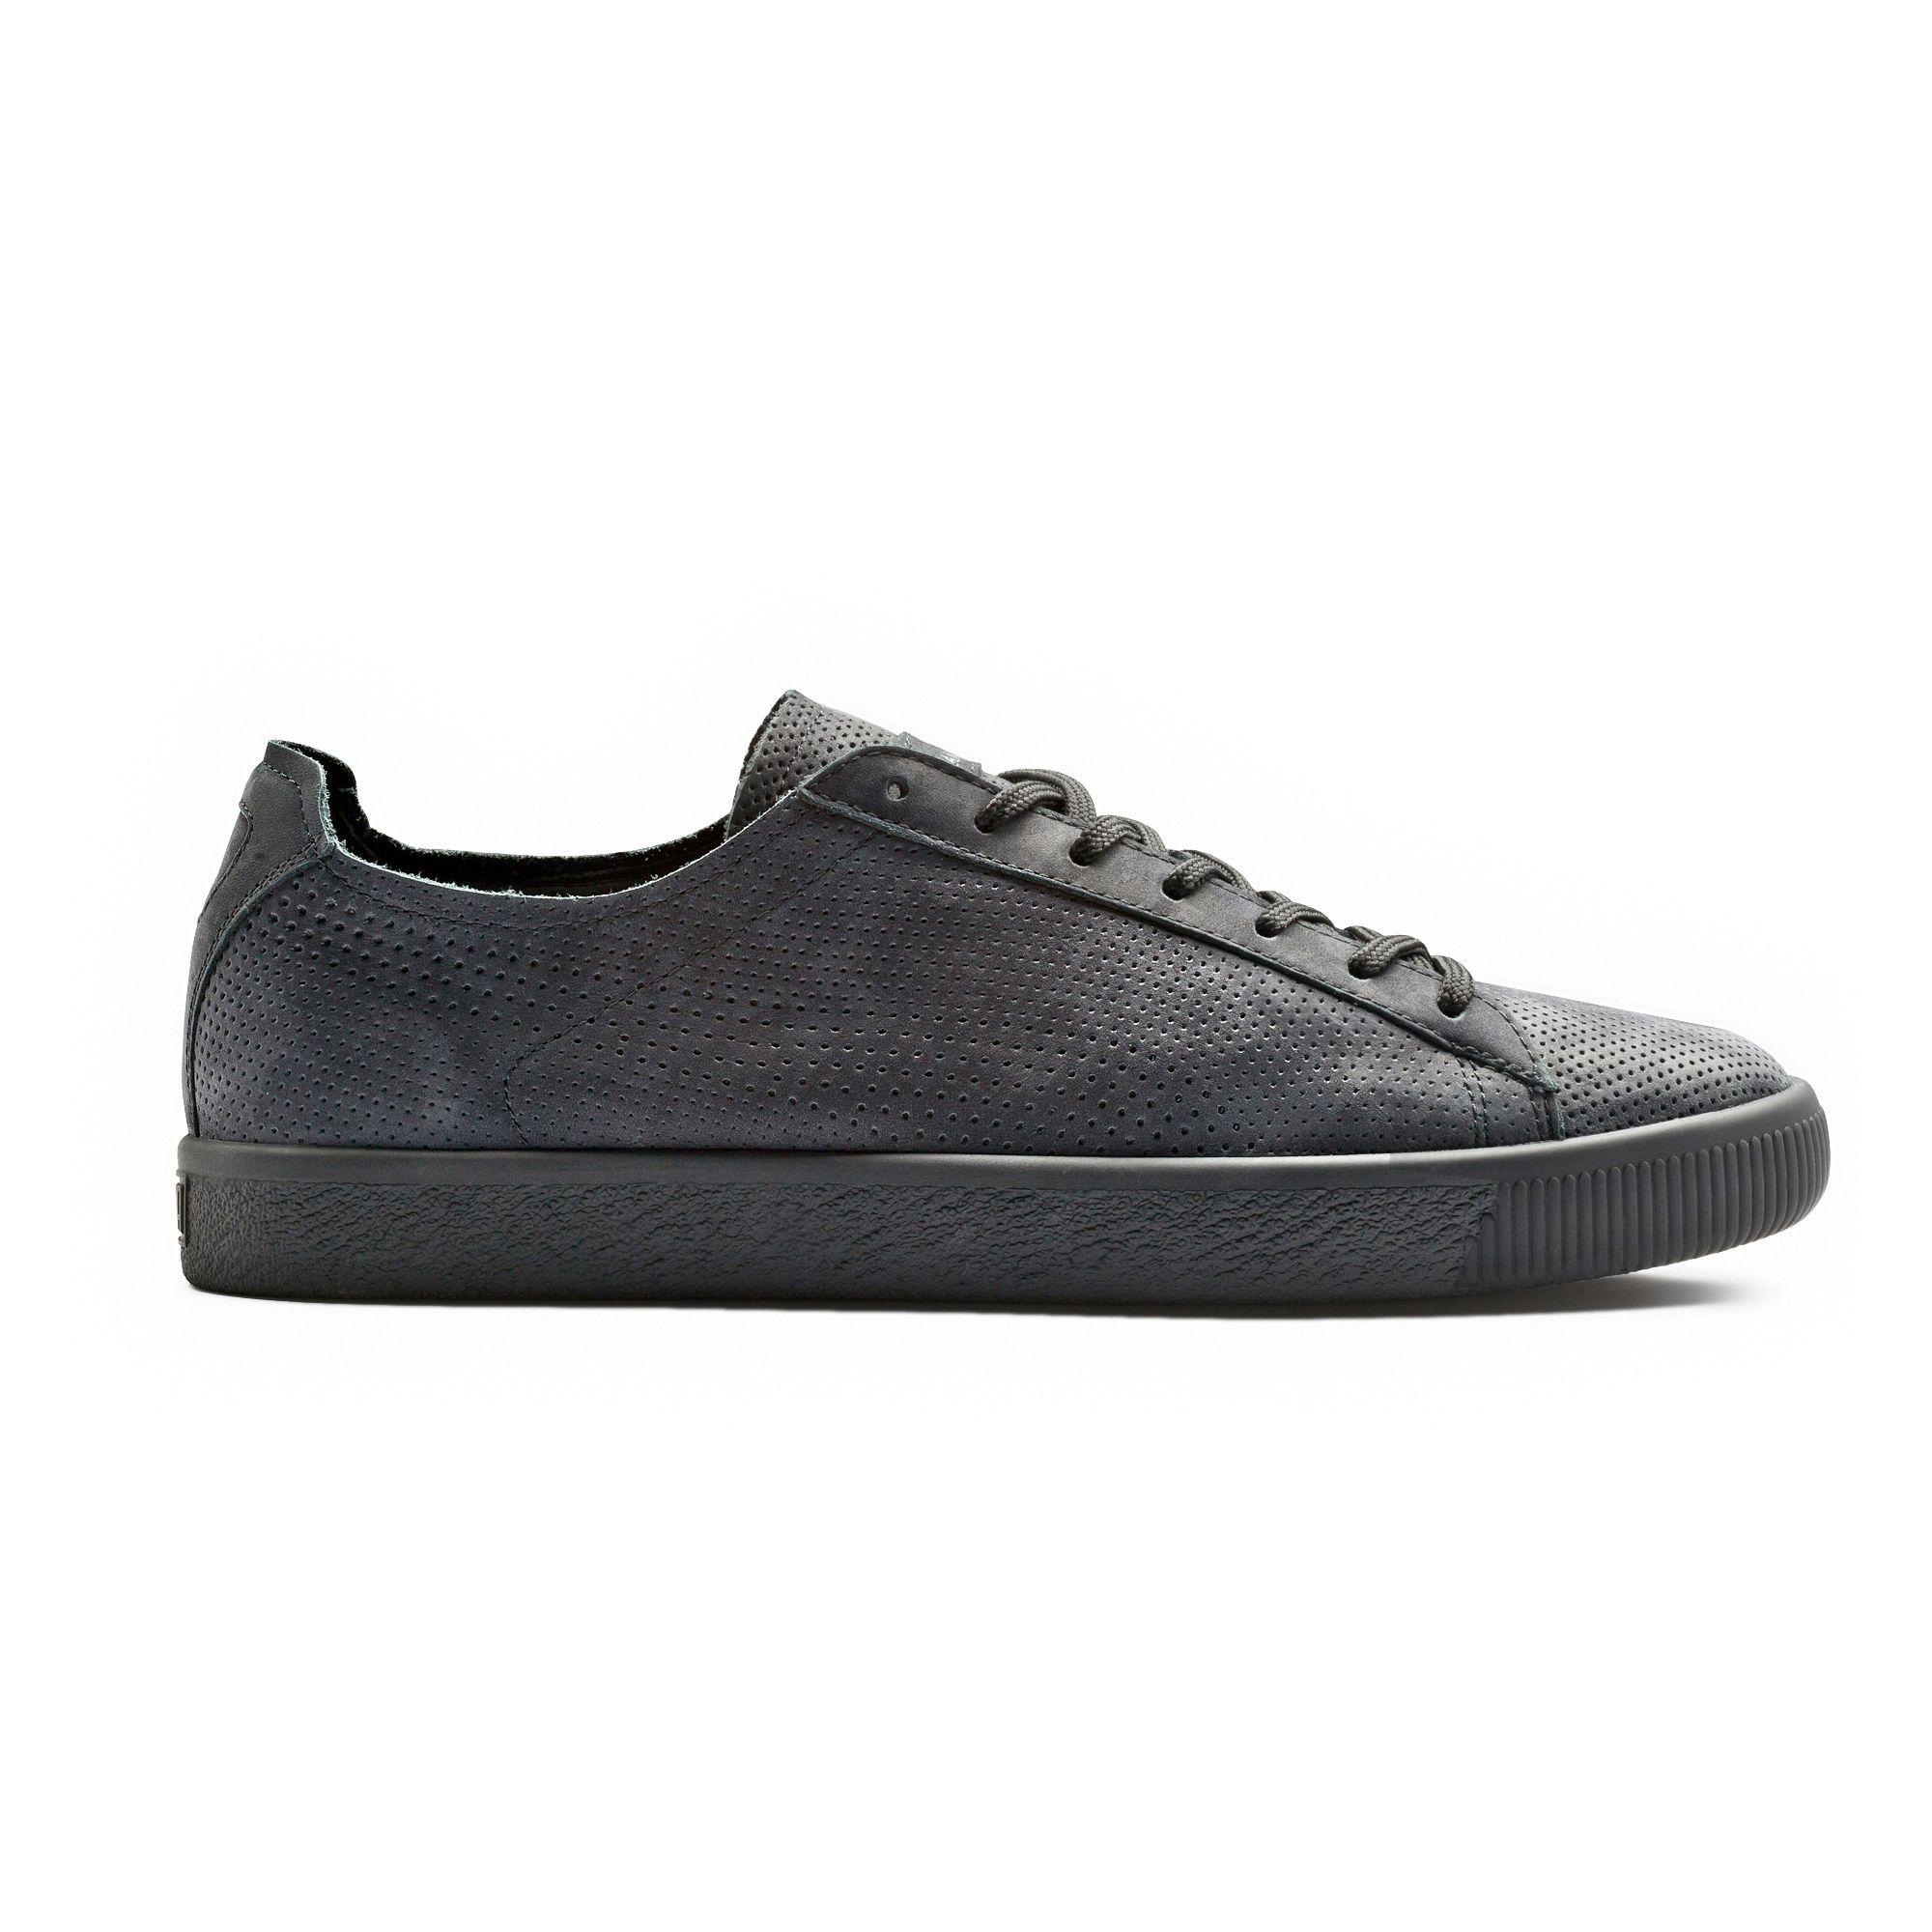 6cab53c60e6 Puma X Stampd Clyde In Black For